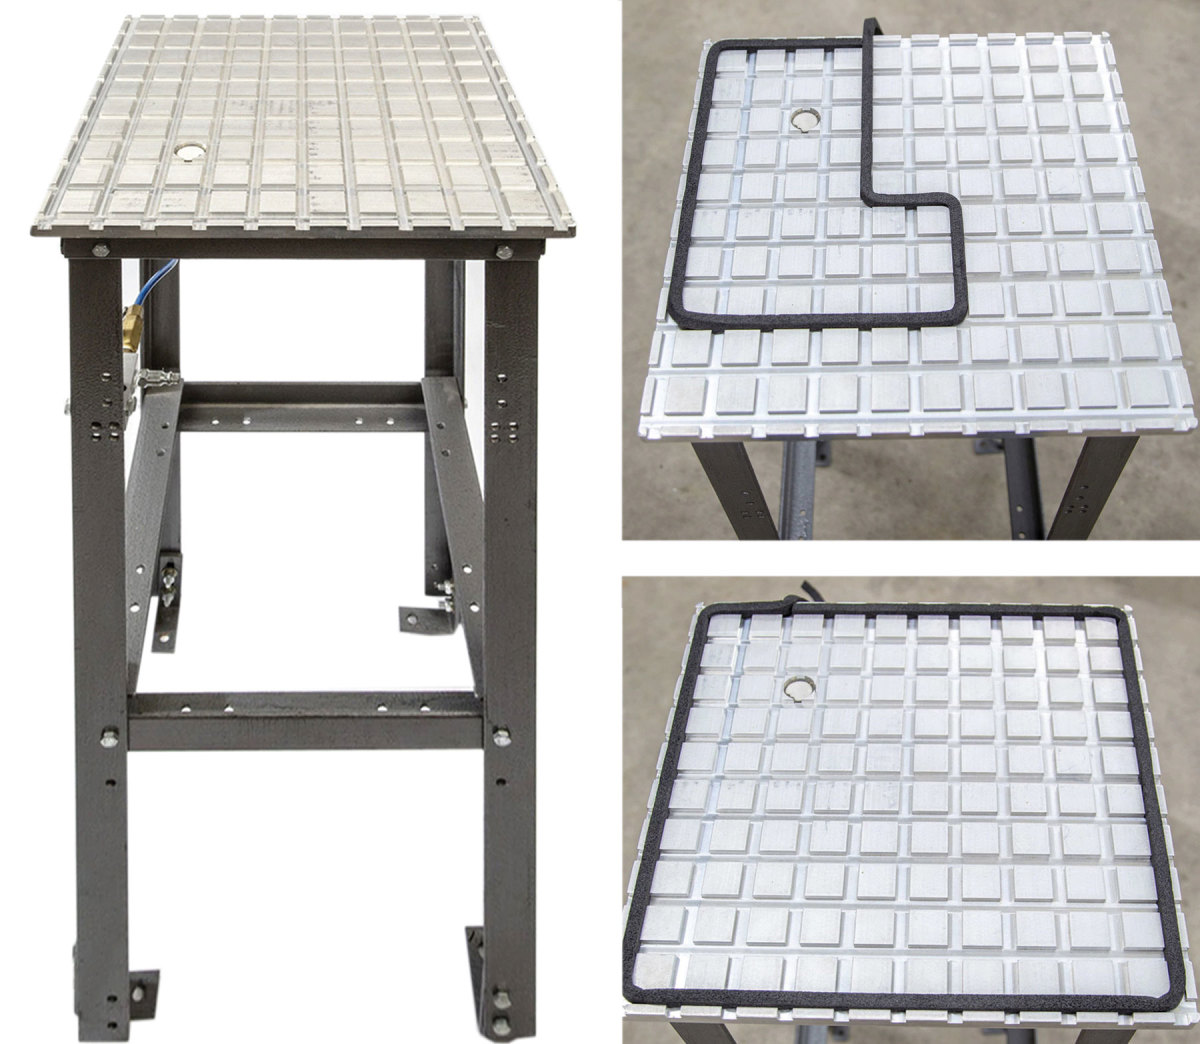 The new vacuum table from Betterly Tools accepts gasket material.